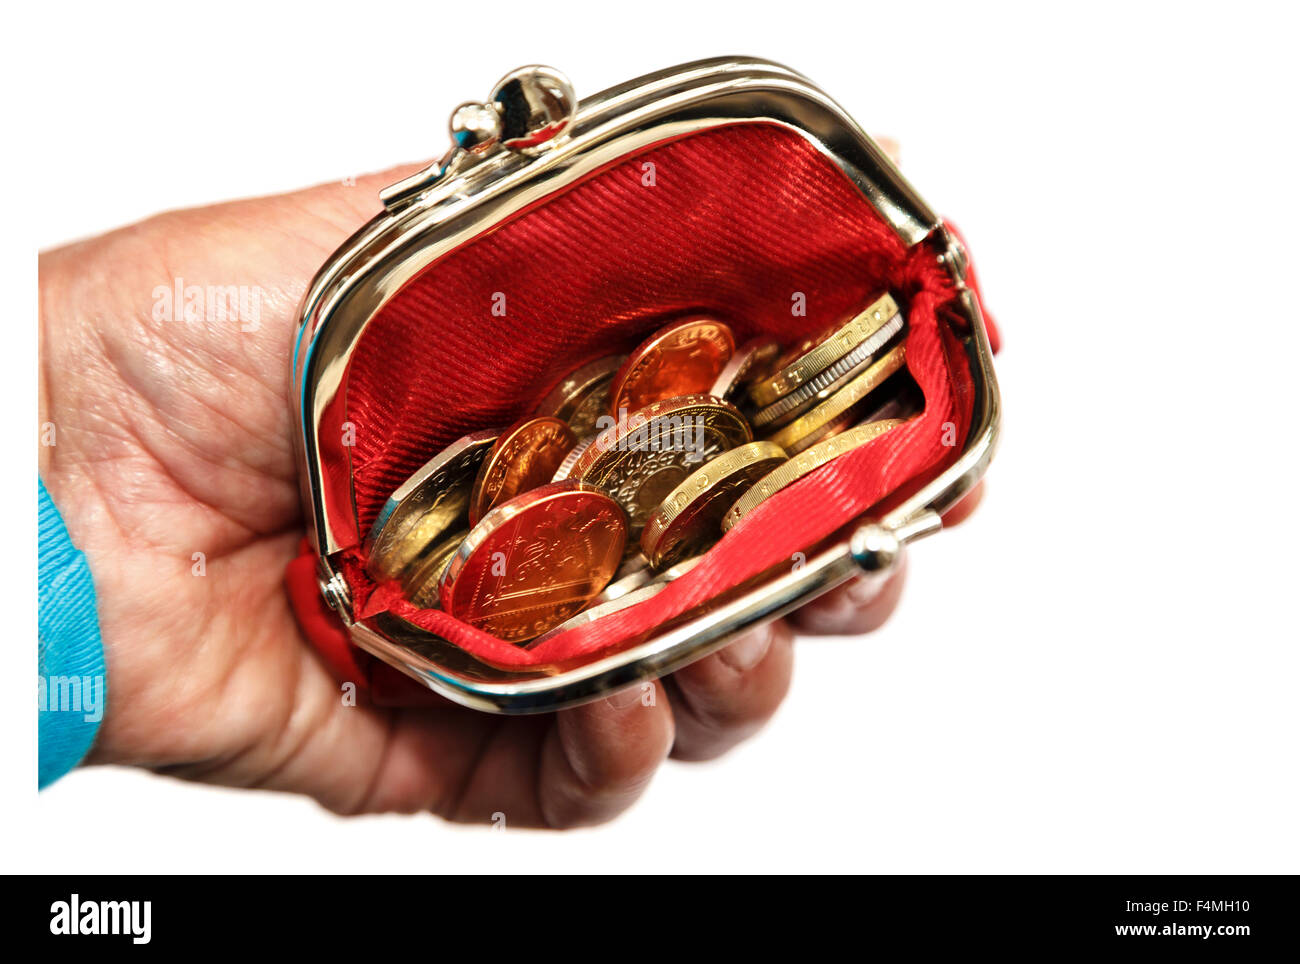 Pensioner's hand holding a red open coin purse with money sterling coins GBP isolated on a white background - Stock Image